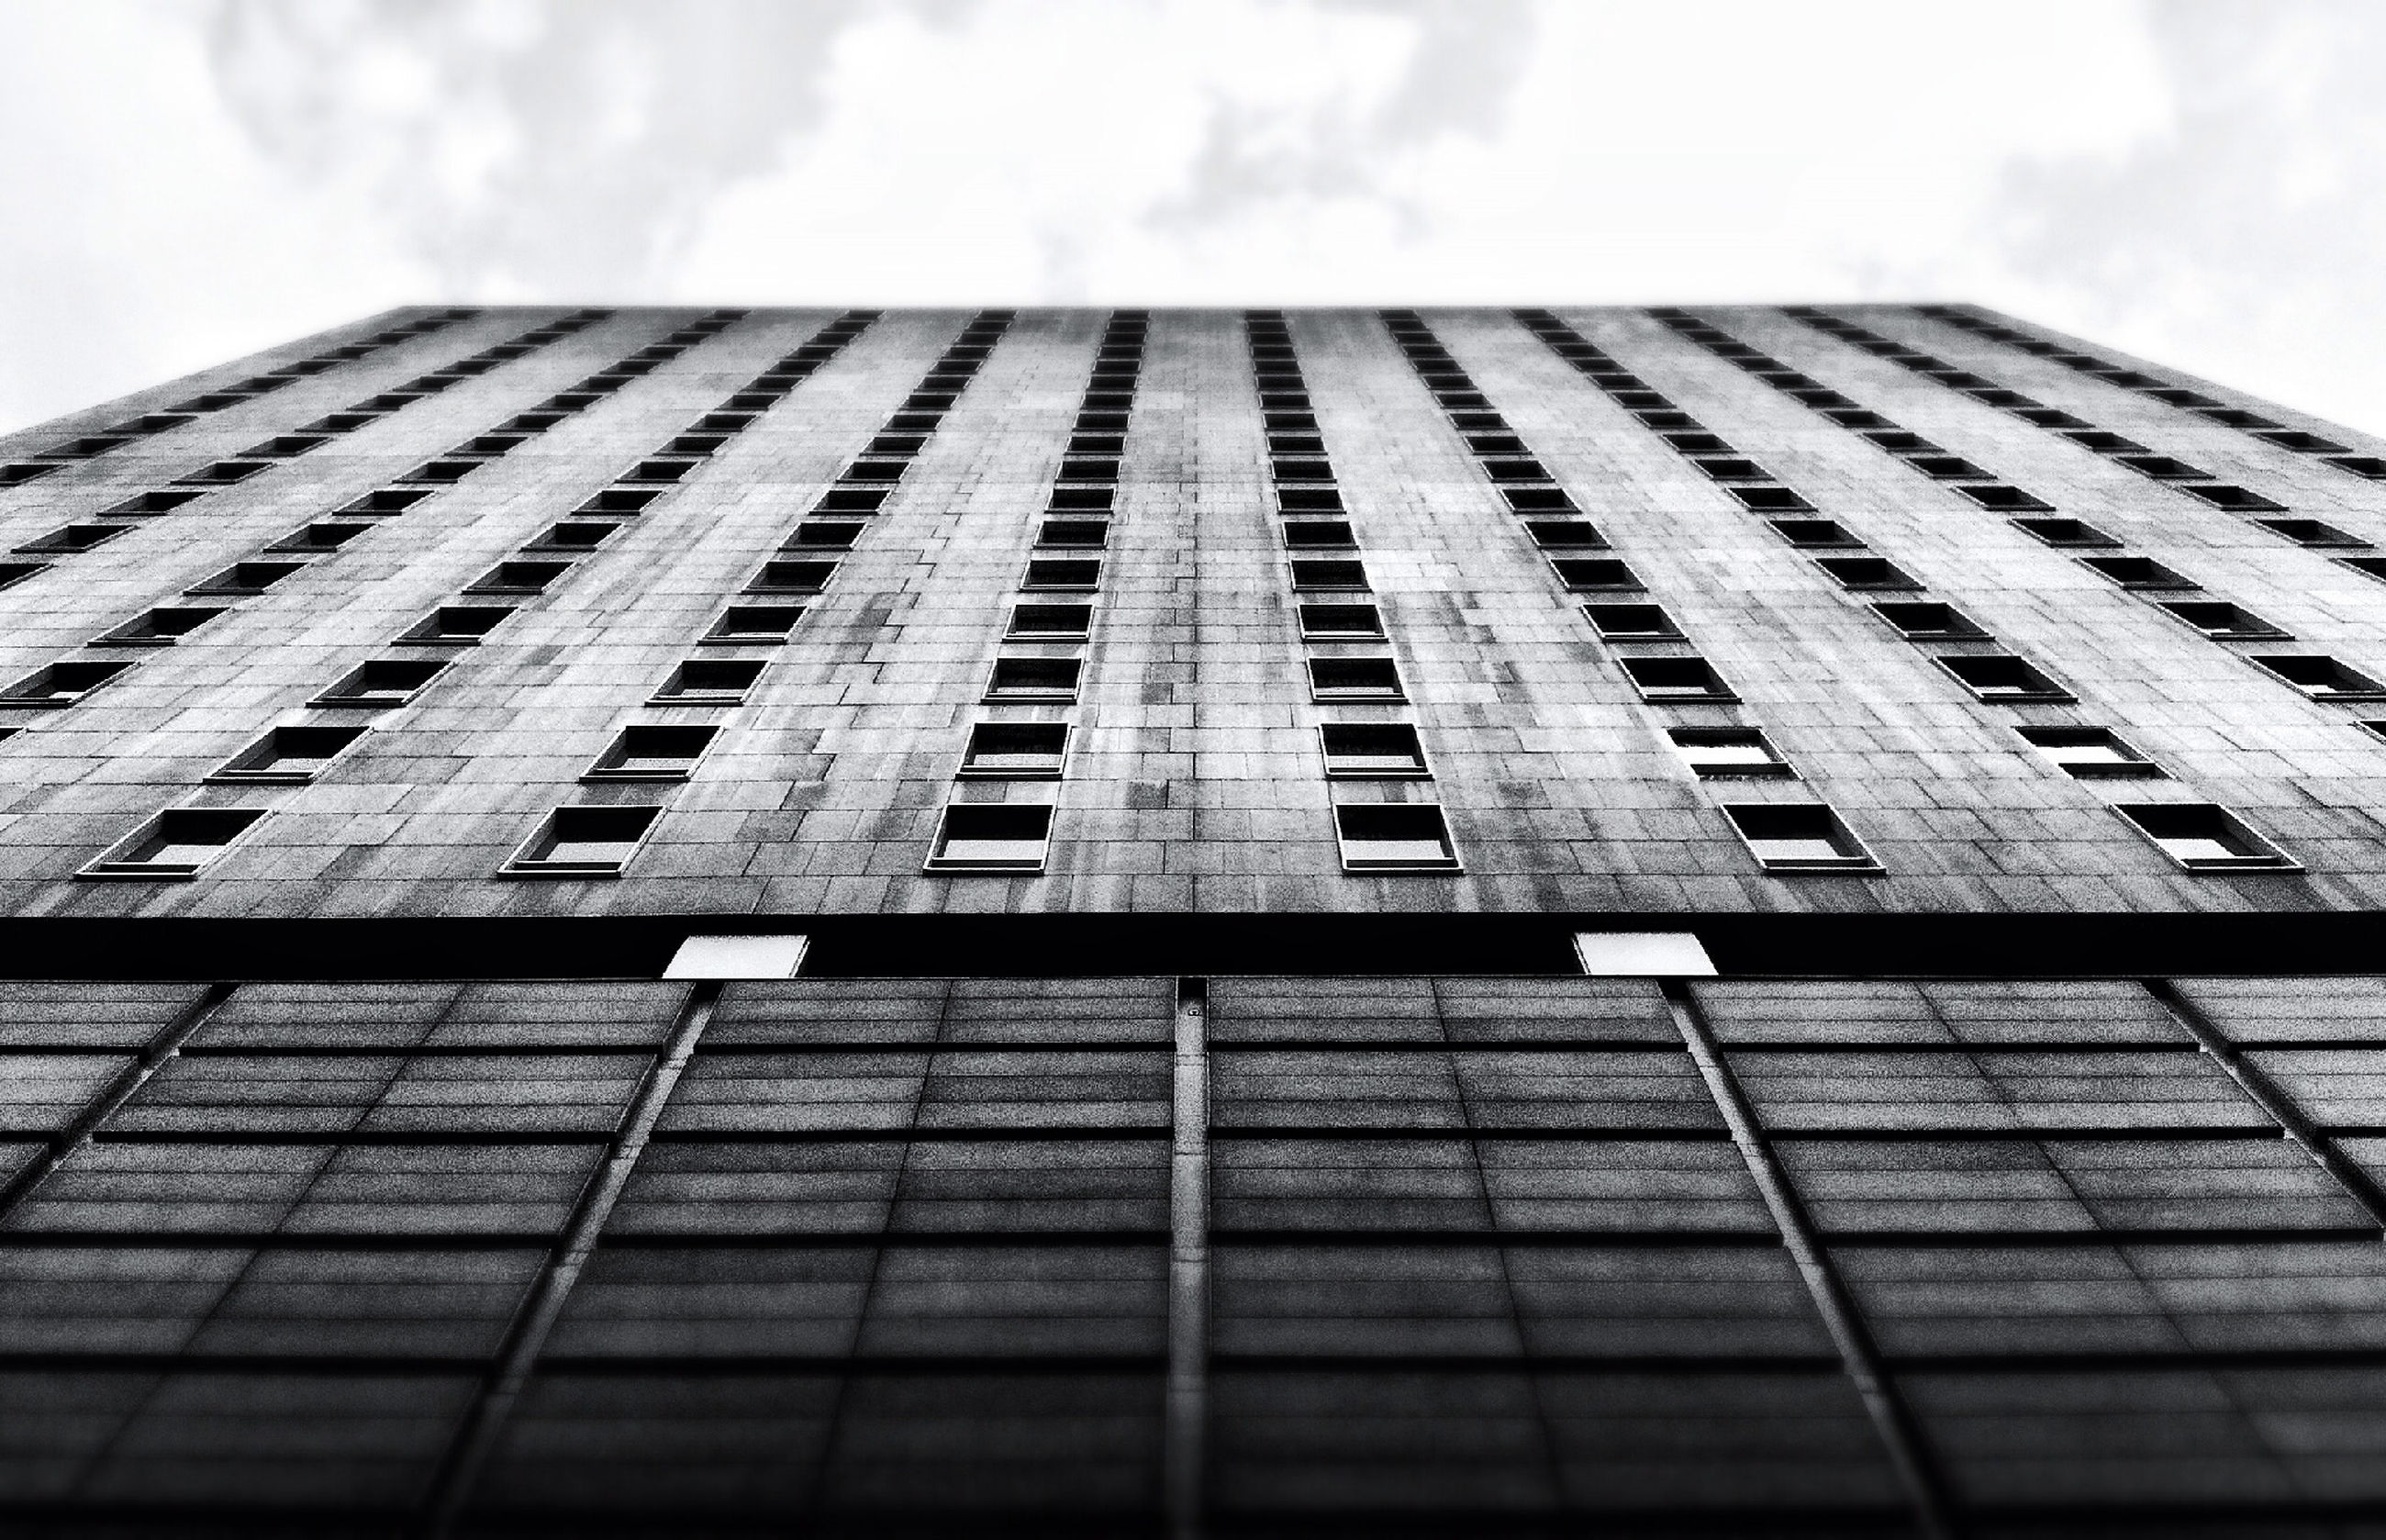 architecture, built structure, building exterior, low angle view, sky, tall - high, modern, office building, tower, building, skyscraper, cloud - sky, city, day, pattern, glass - material, tall, window, outdoors, no people